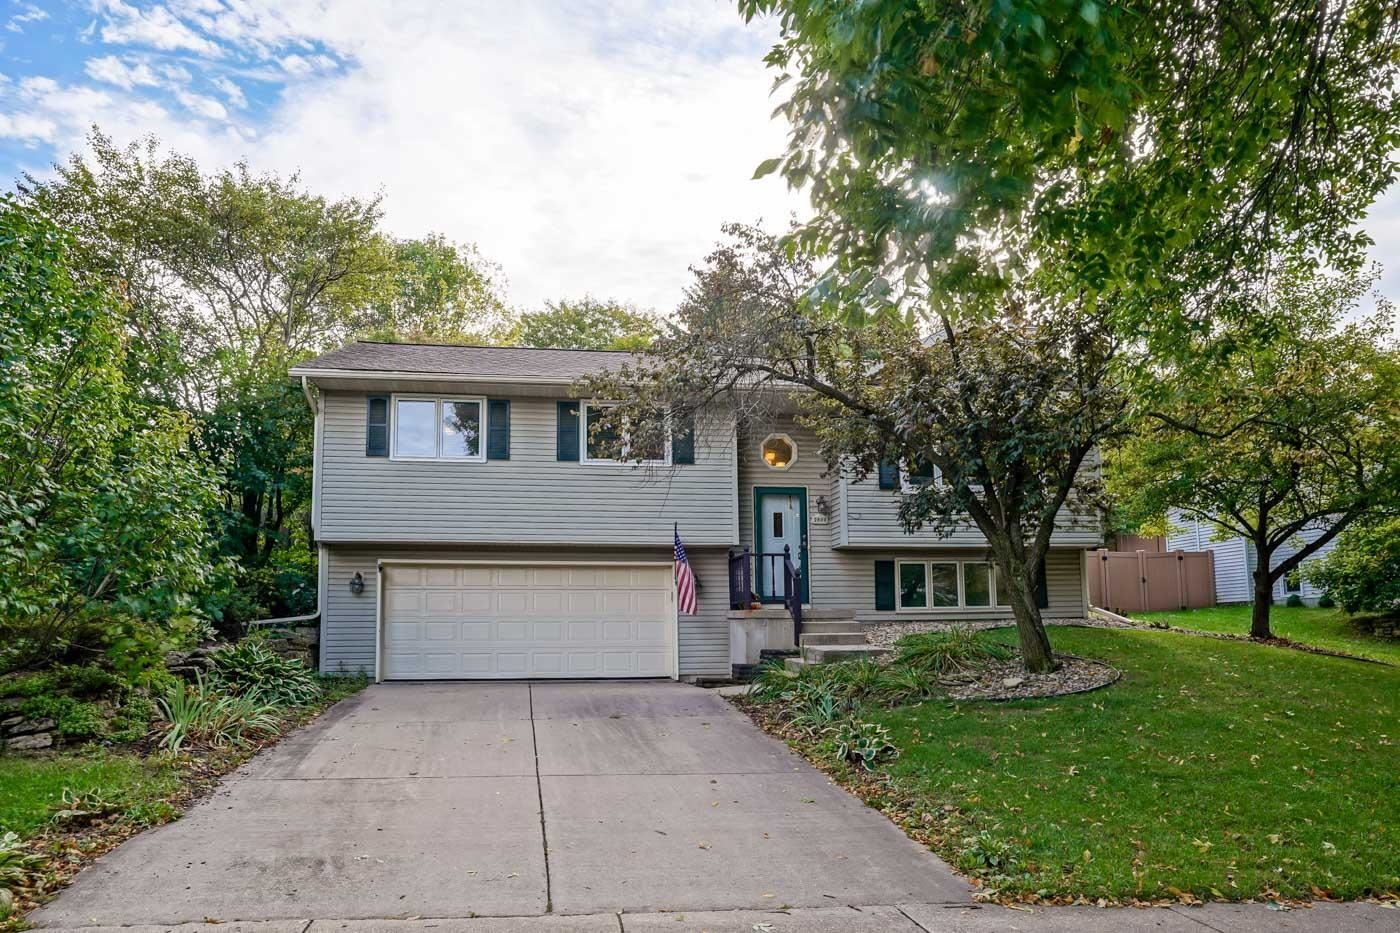 2809 Maple Grove Dr, Madison, WI 53719 - #: 1920305